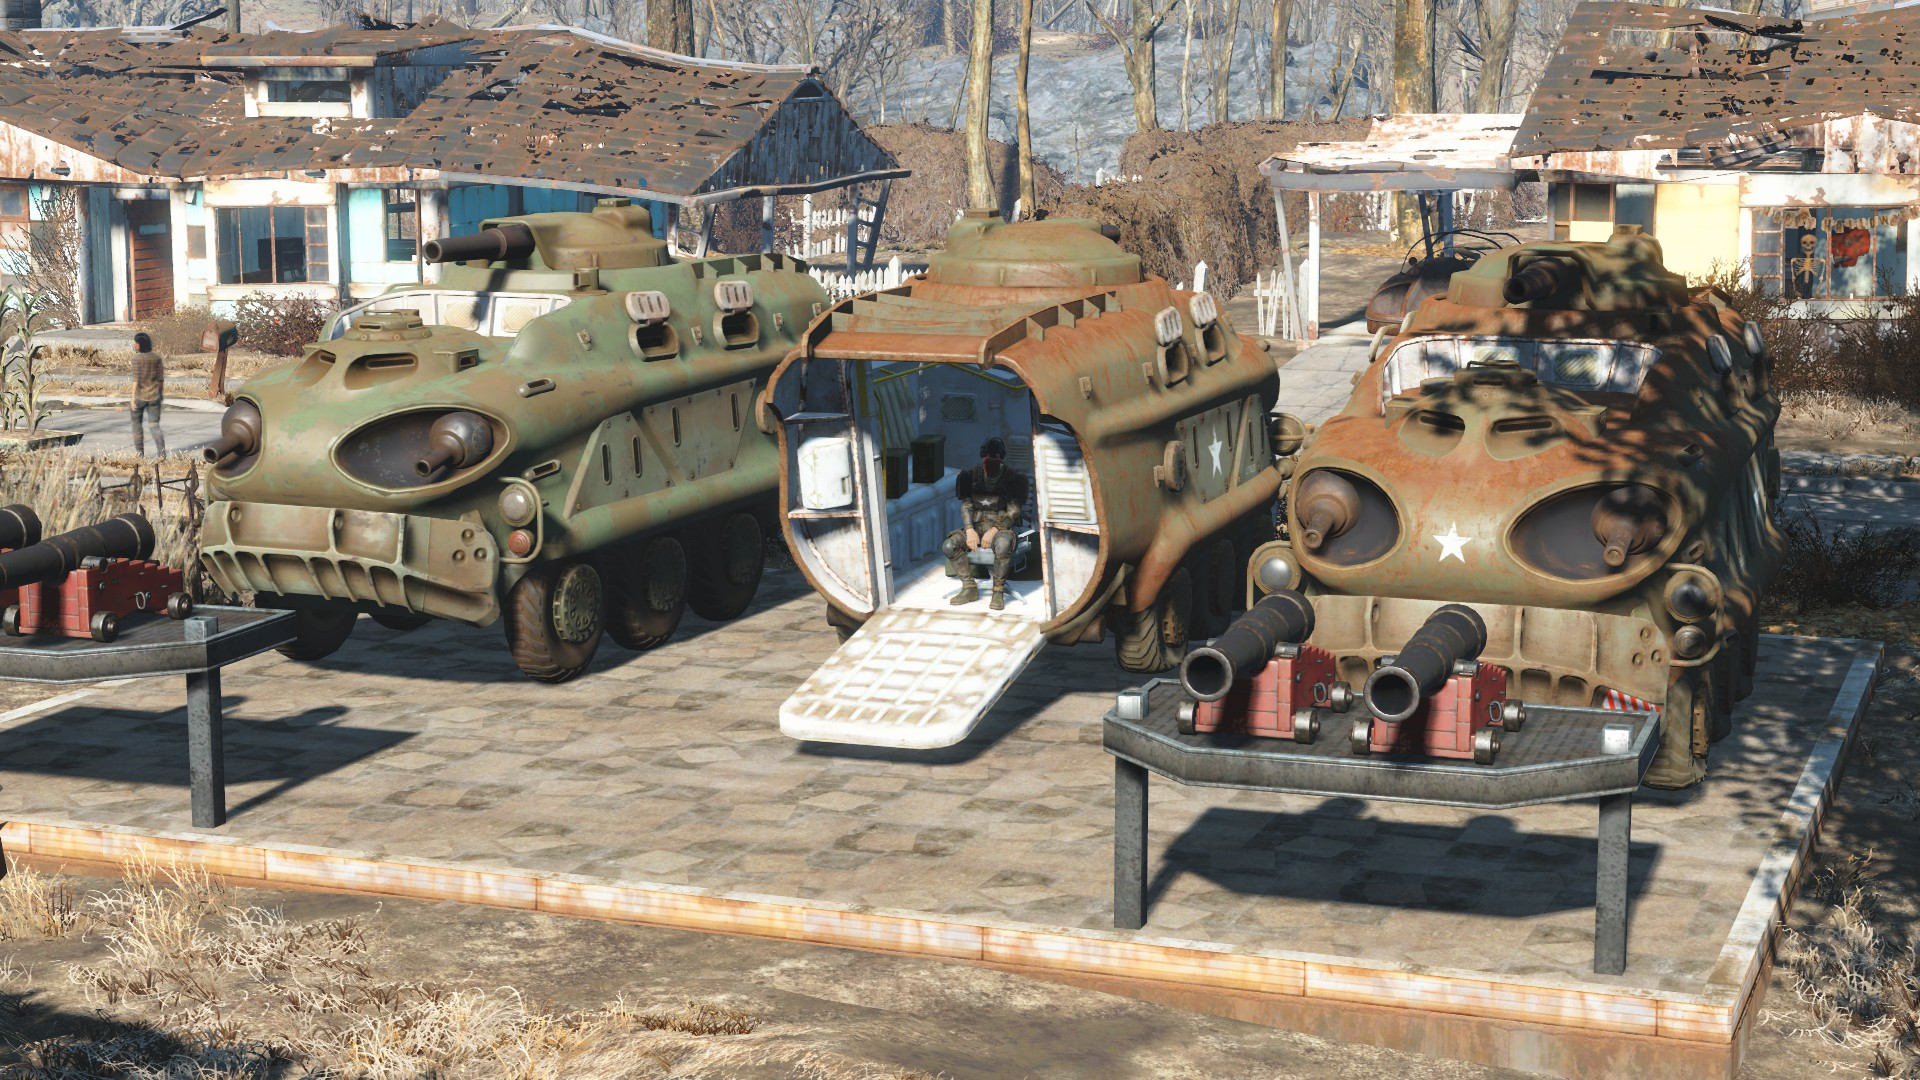 Fusion Fall Wallpaper Hd Settlement Supplies Expanded At Fallout 4 Nexus Mods And